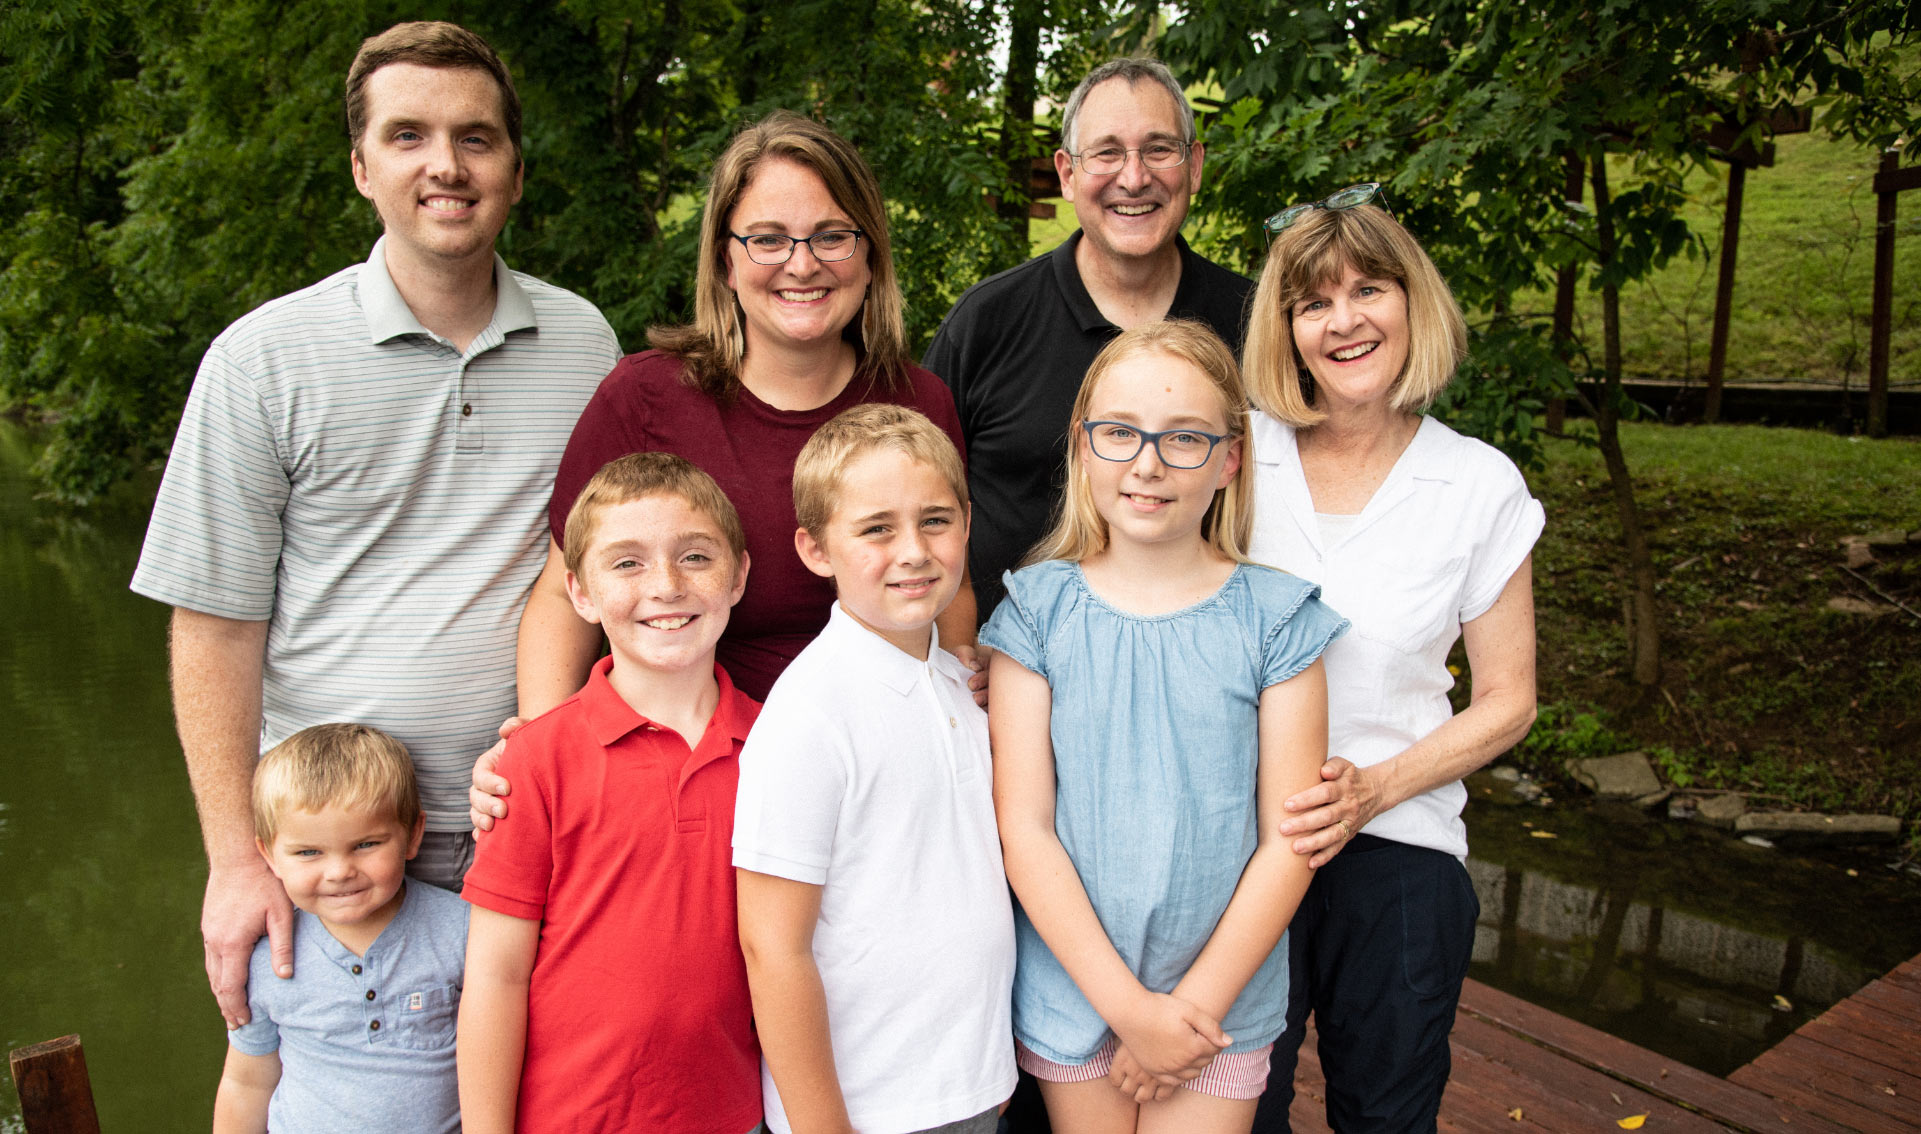 A group shot of Max and his family, including his grandparents, standing together in an outdoor setting.